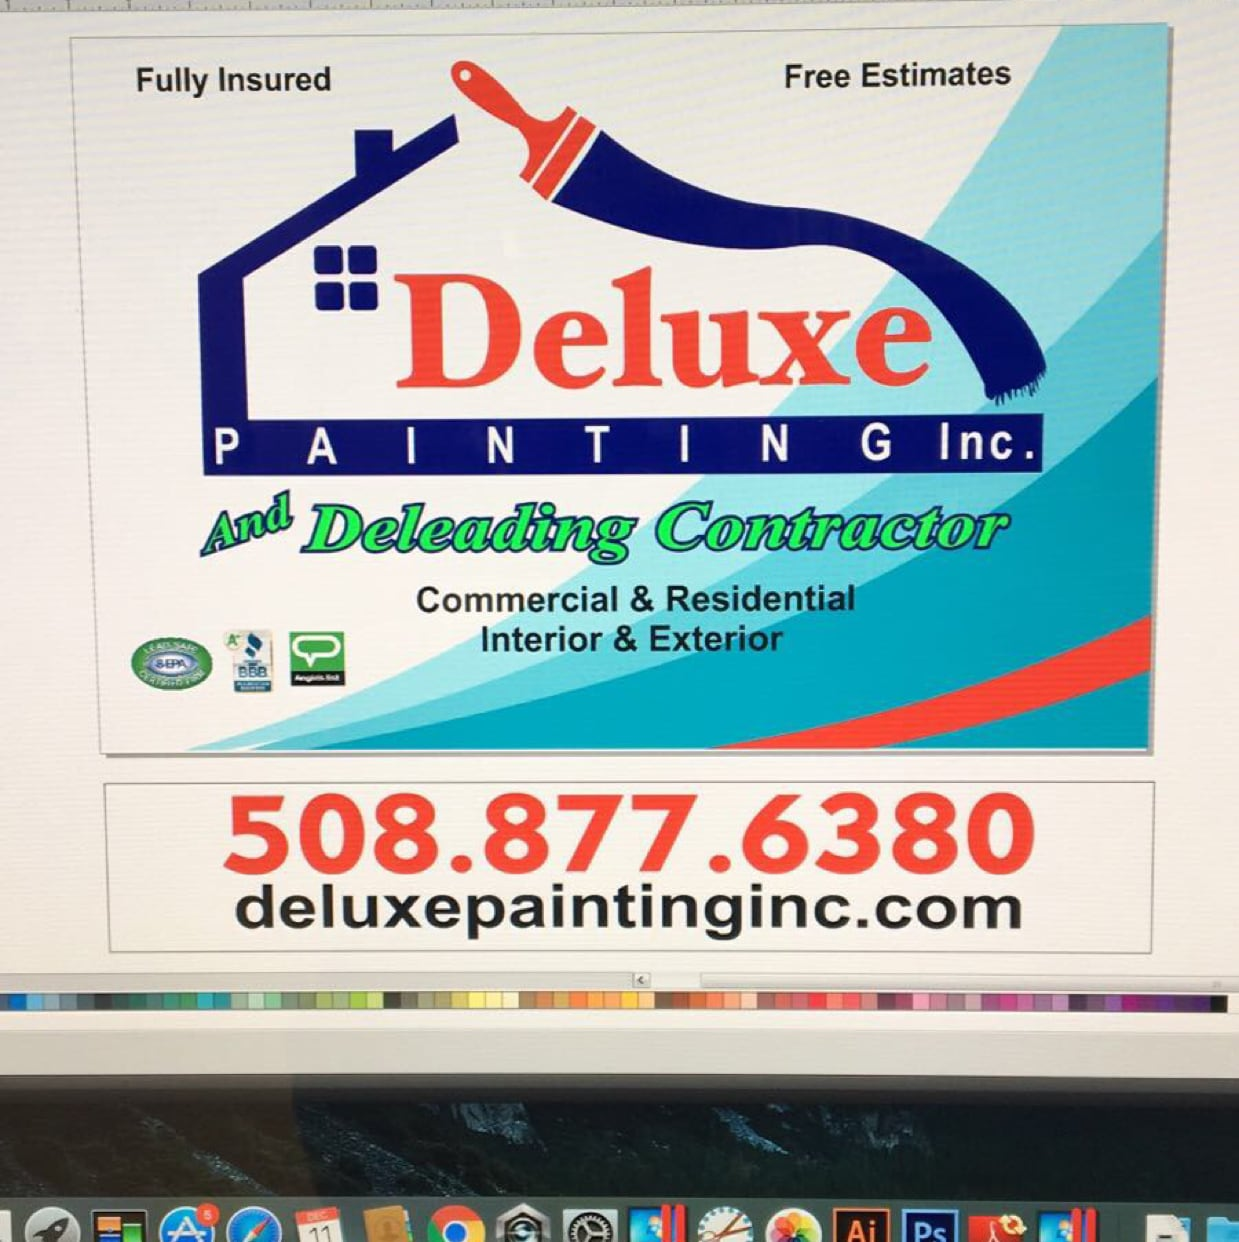 DELUXE PAINTING INC.